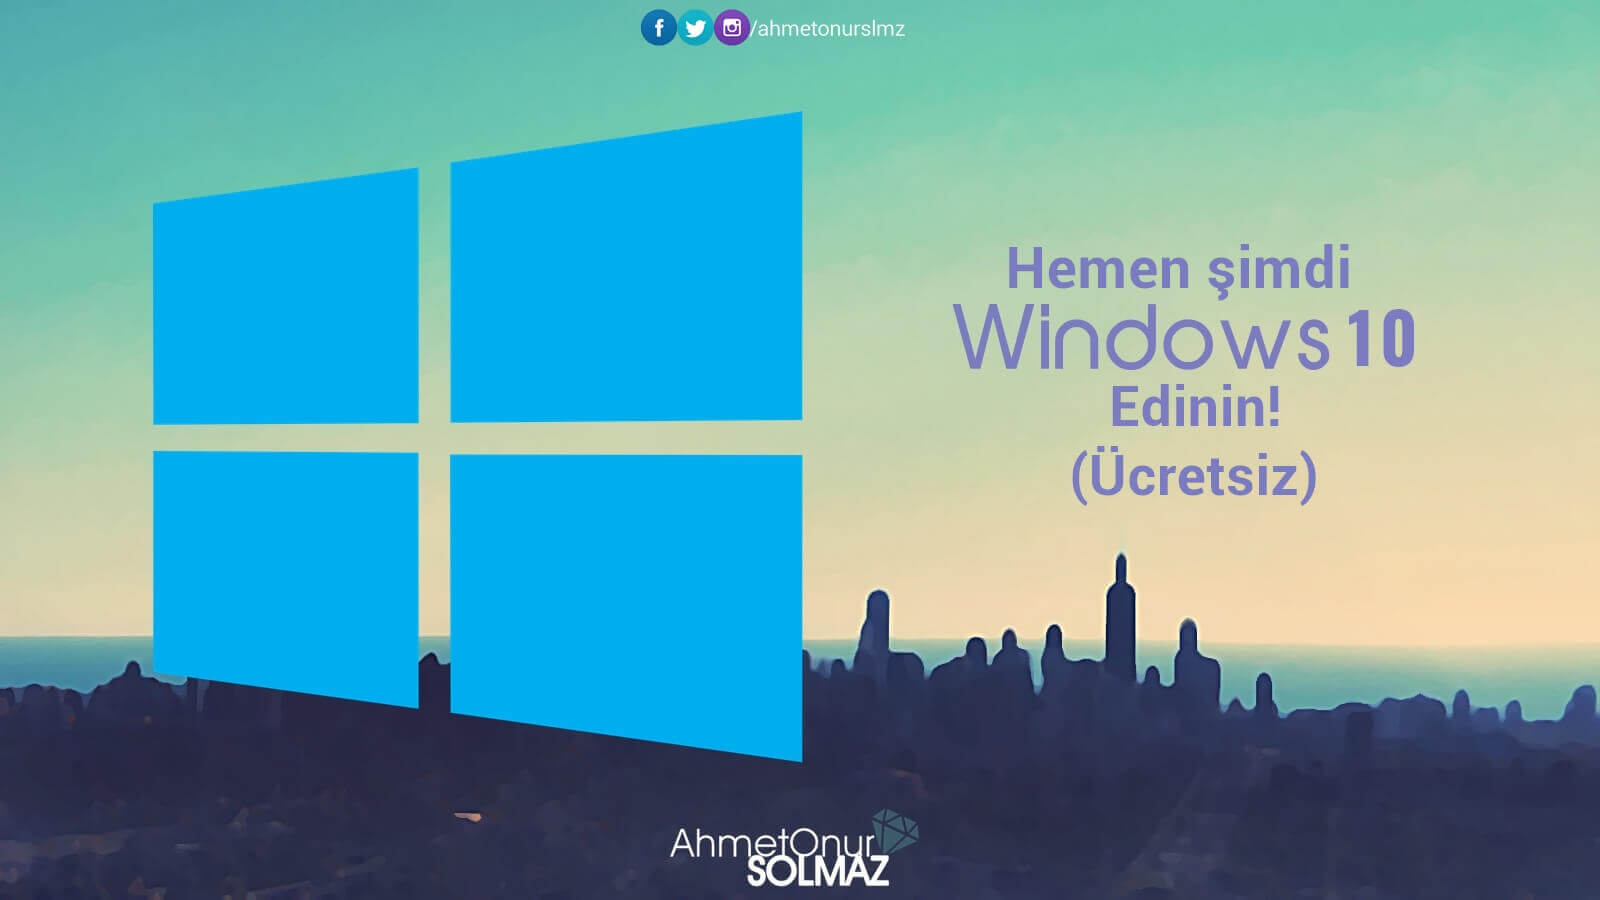 hemen-simdi-windows-10-edinin